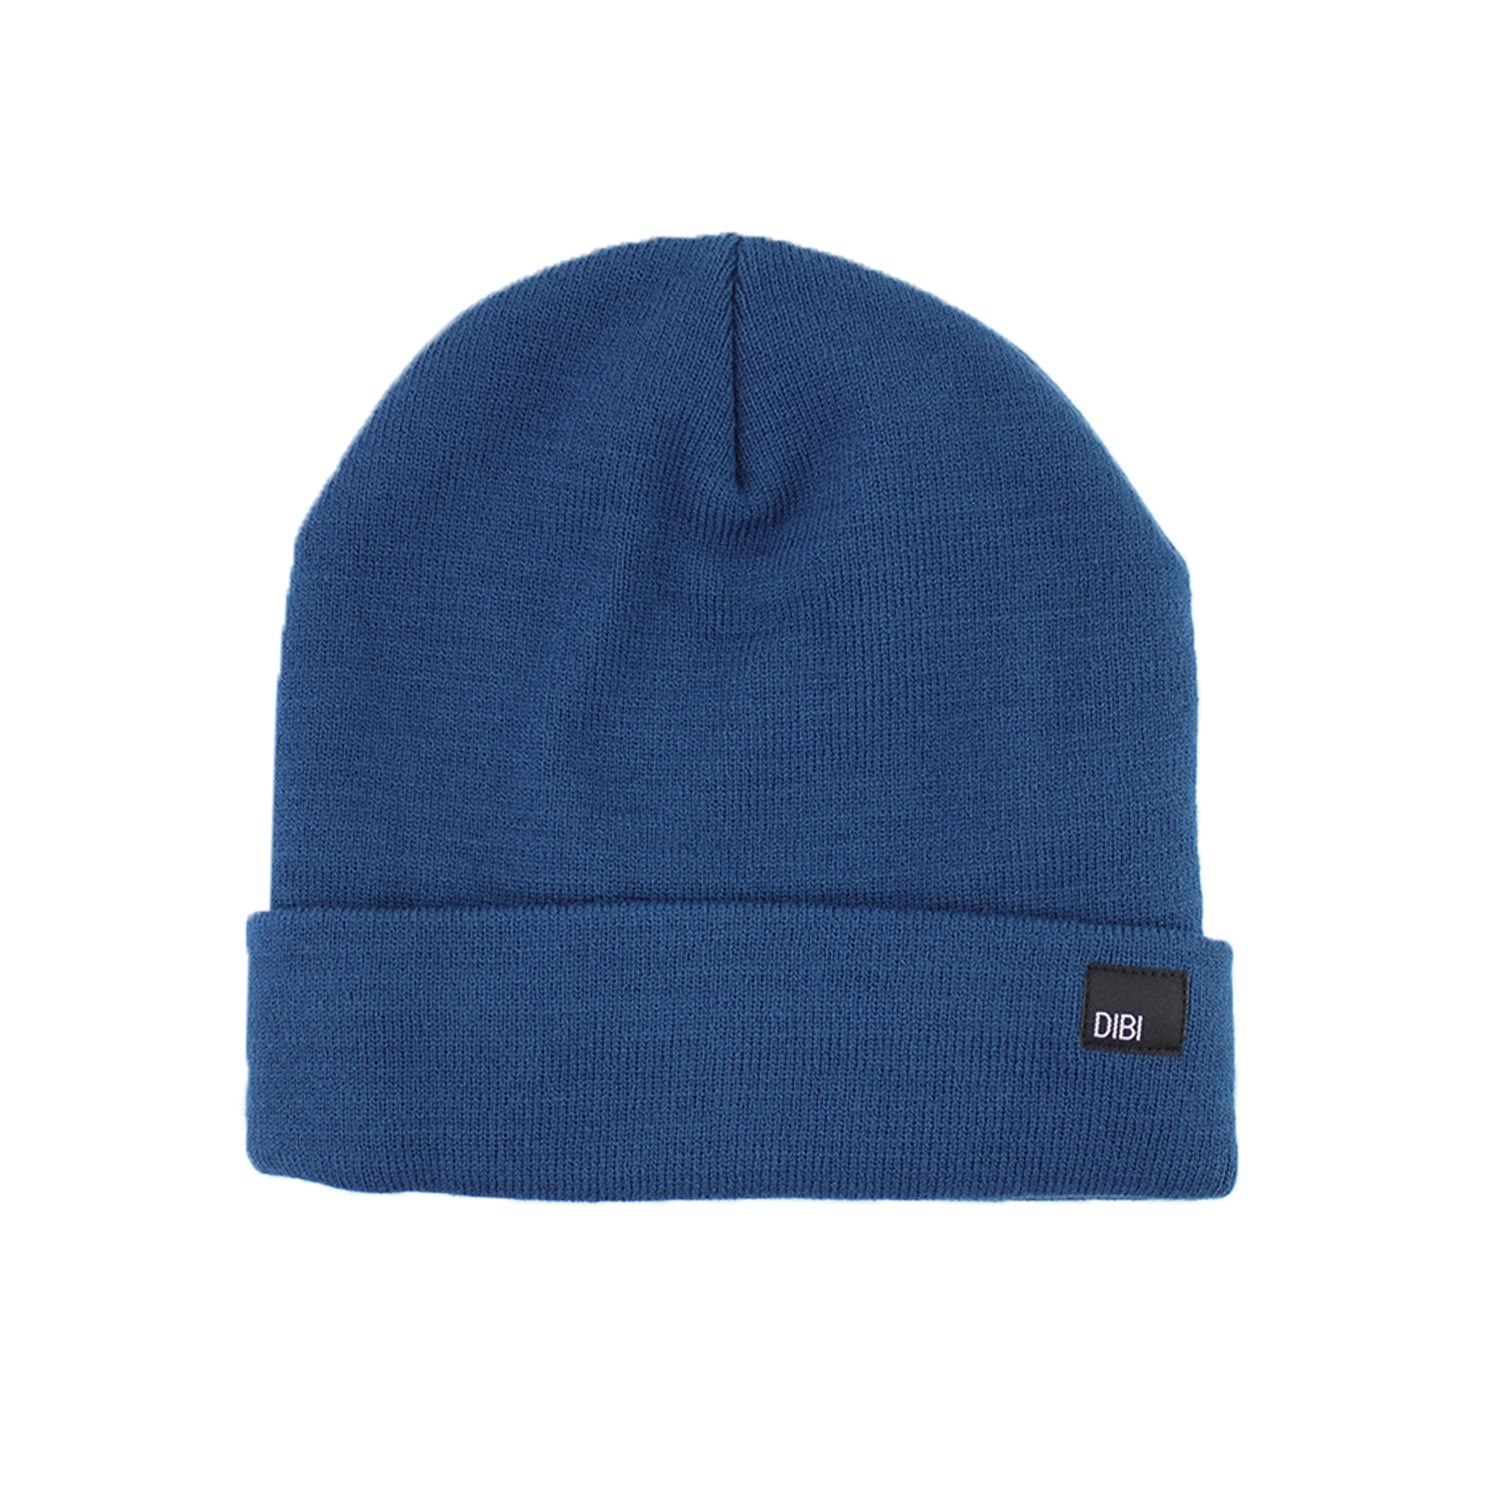 Fleece Lined Teal Beanie from DIBI